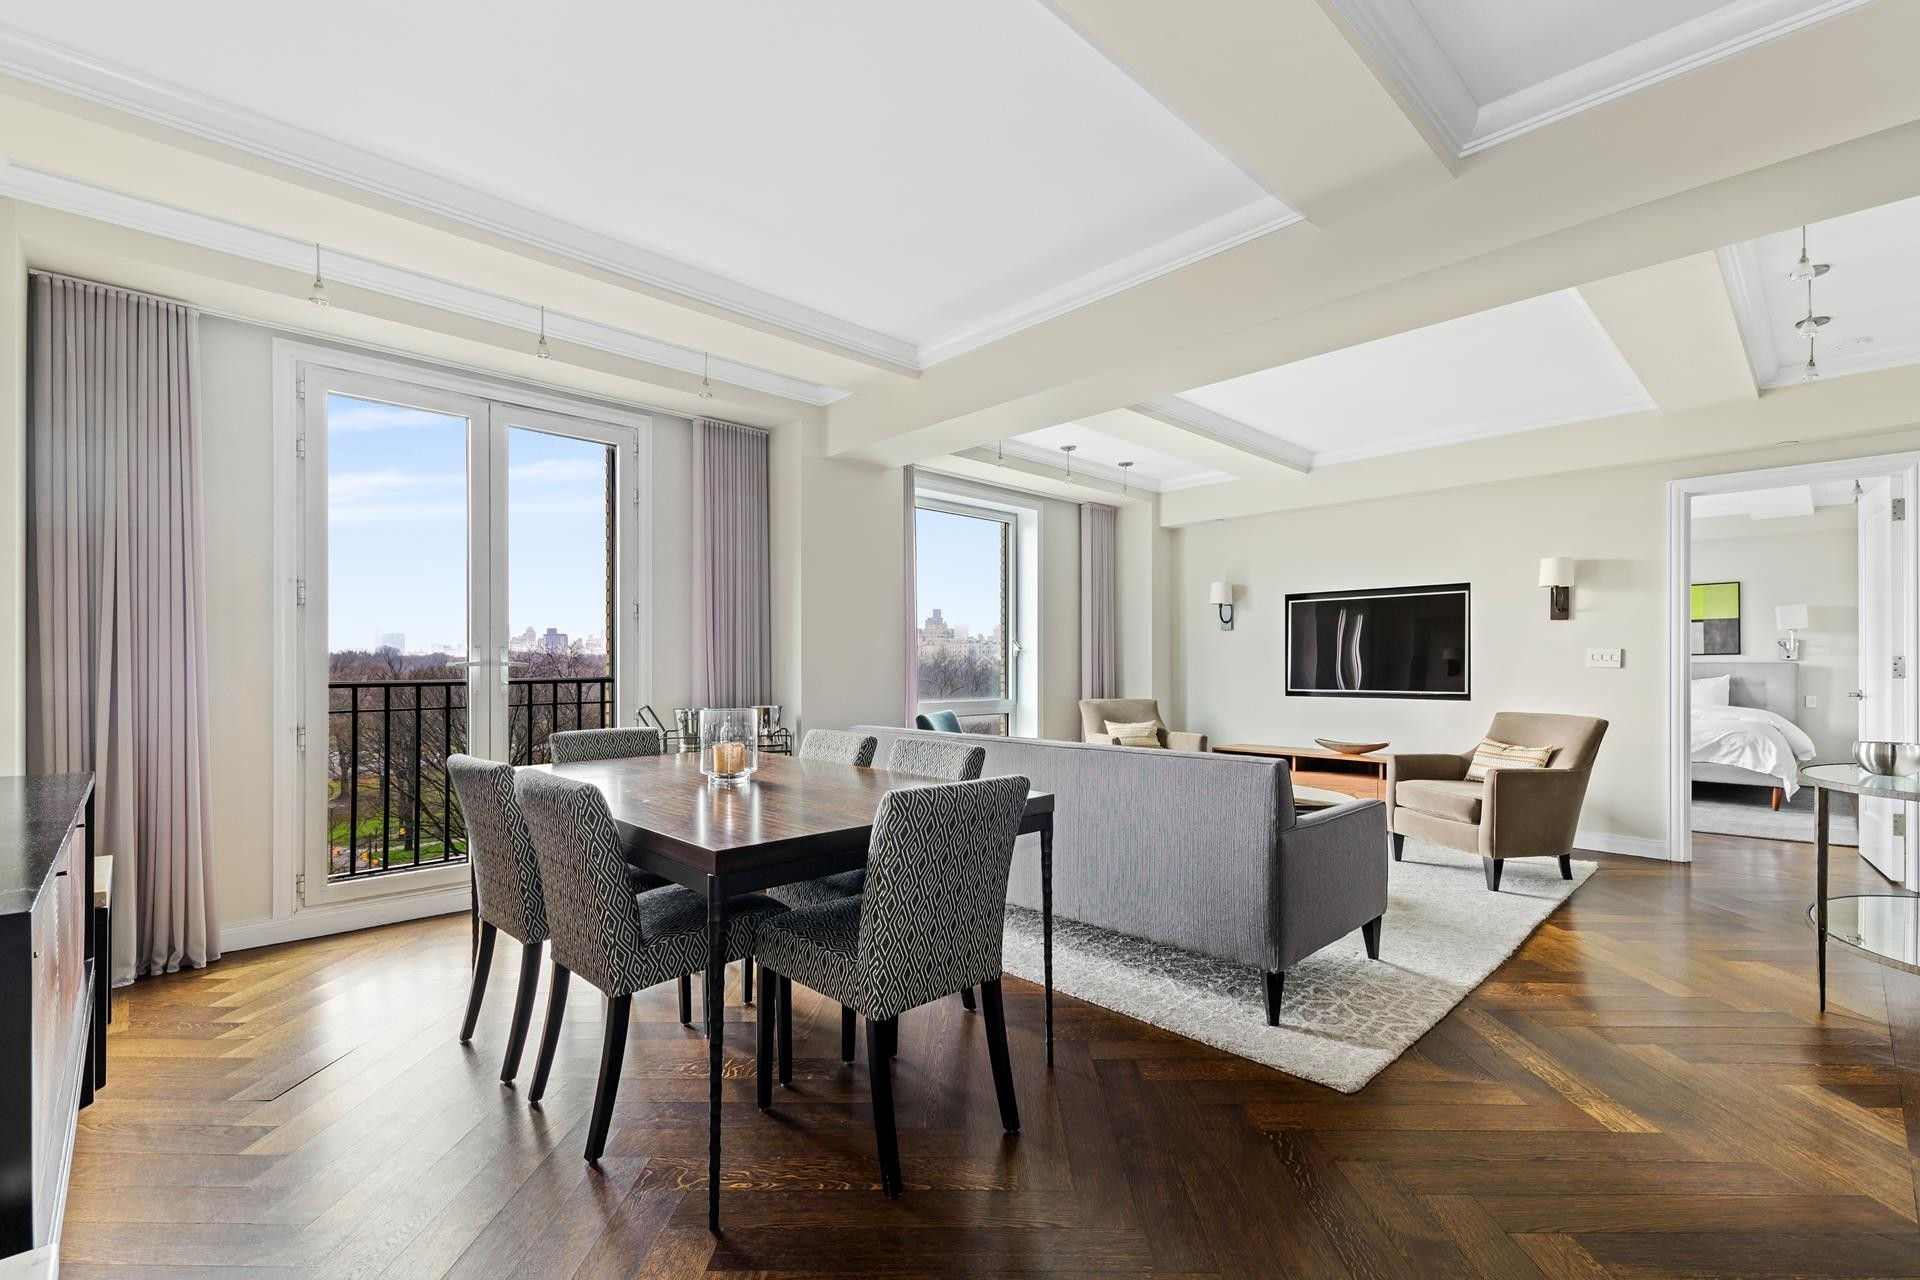 Condominium à Essex House, 160 CENTRAL PARK S, 705 Central Park South, New York, NY 10019